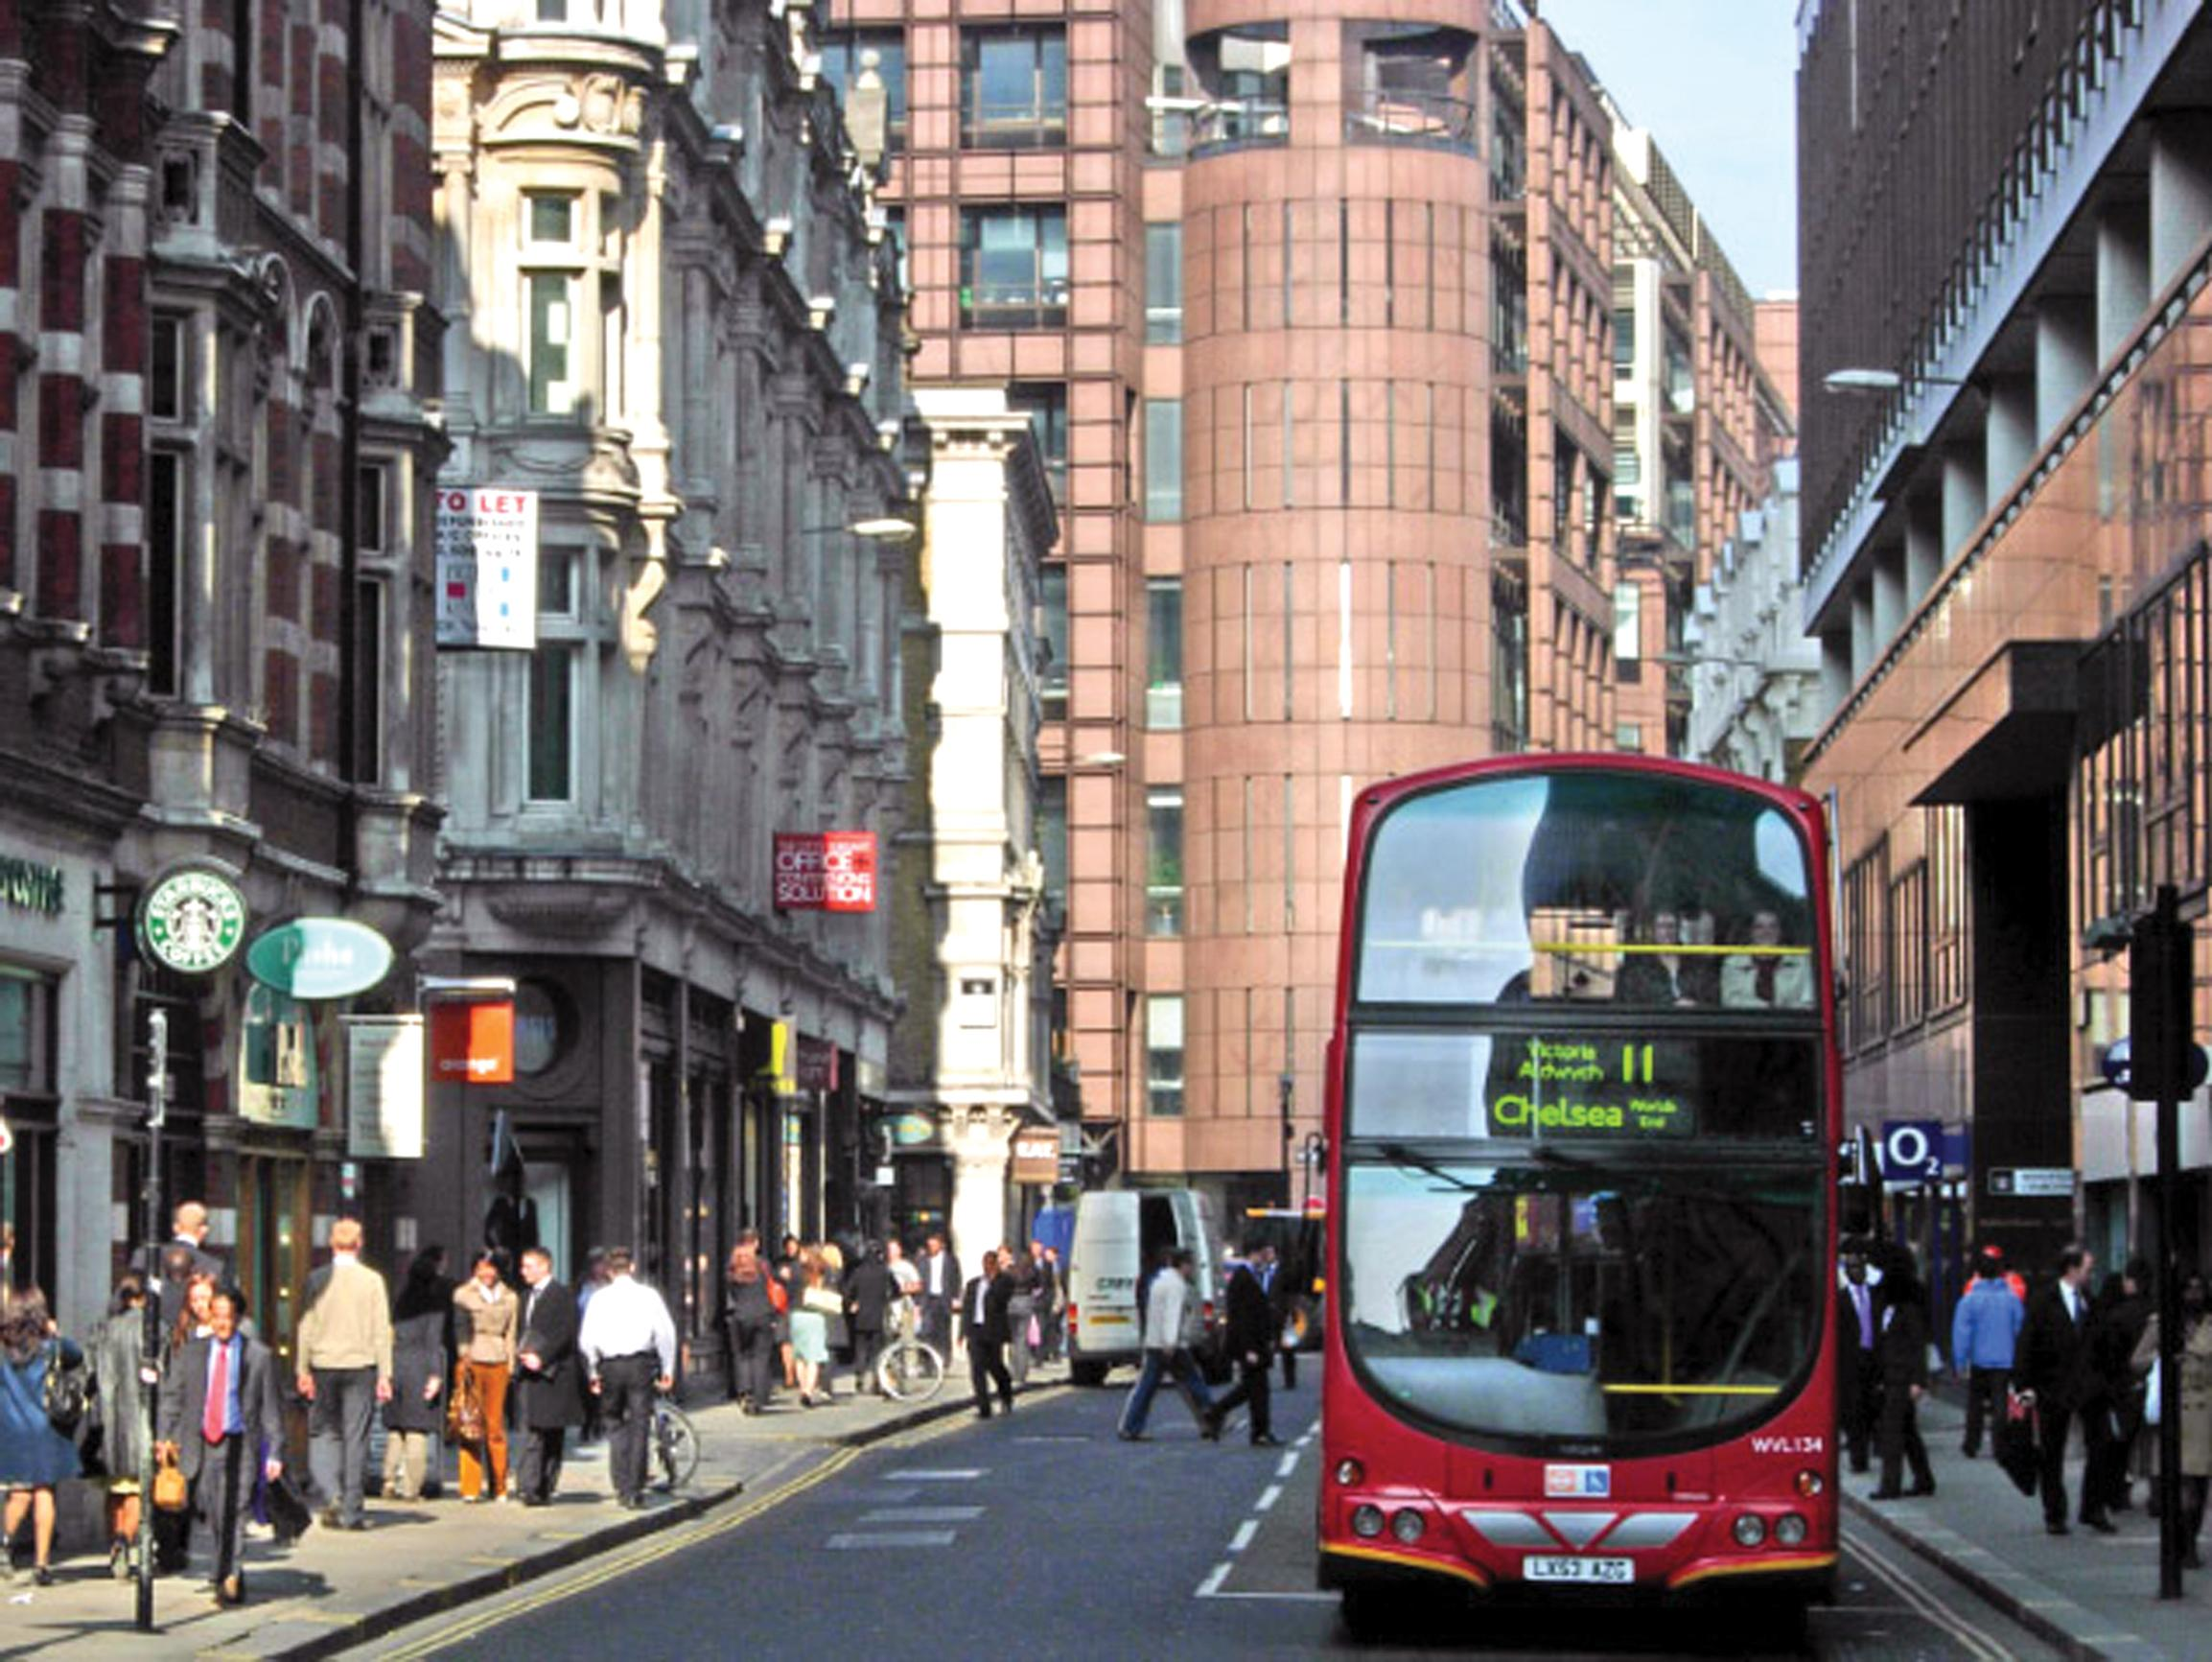 The City: too many buses